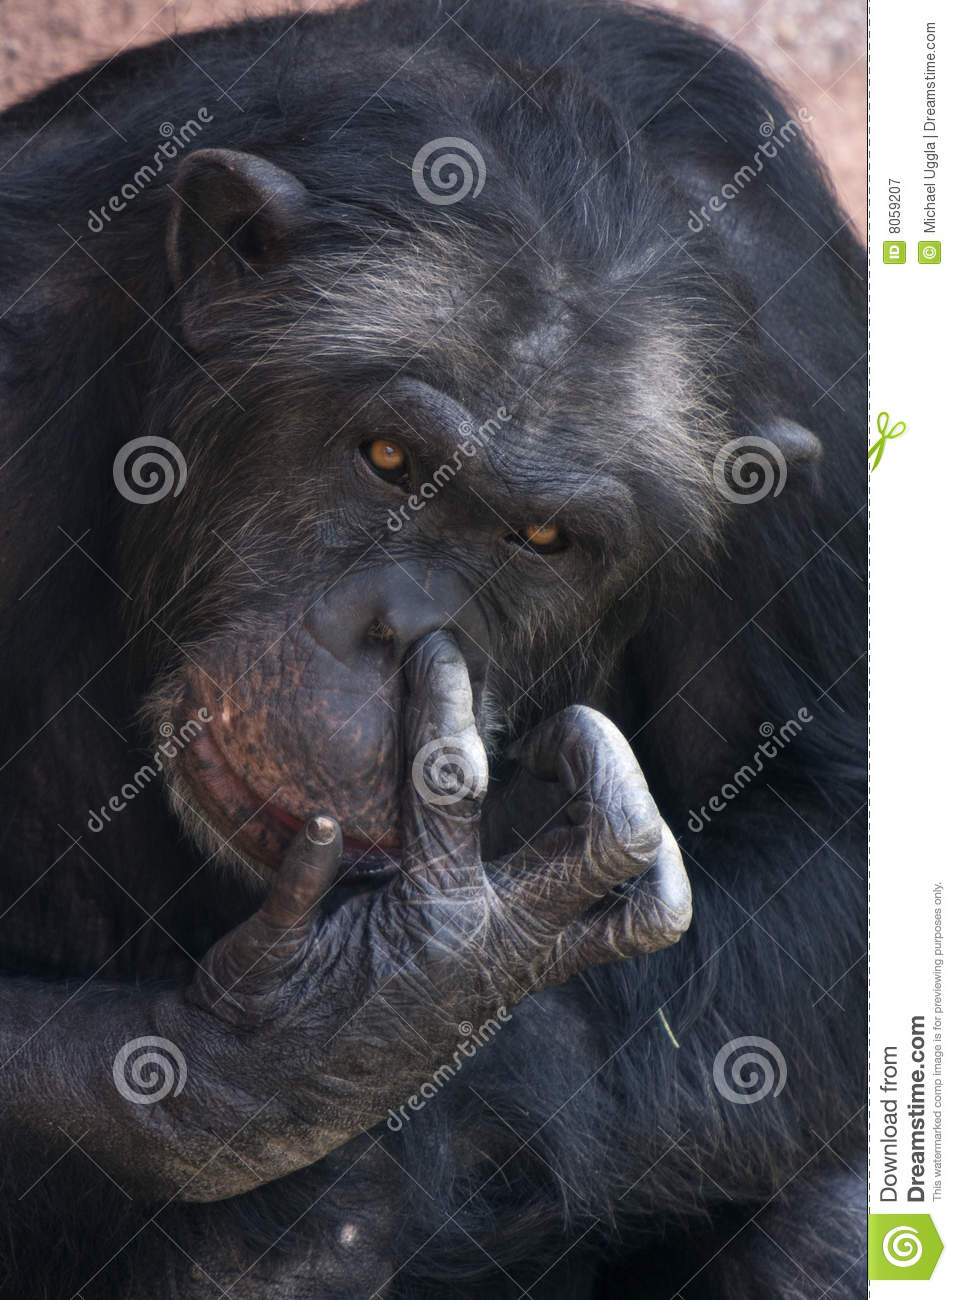 Picture of a monkey picking his nose